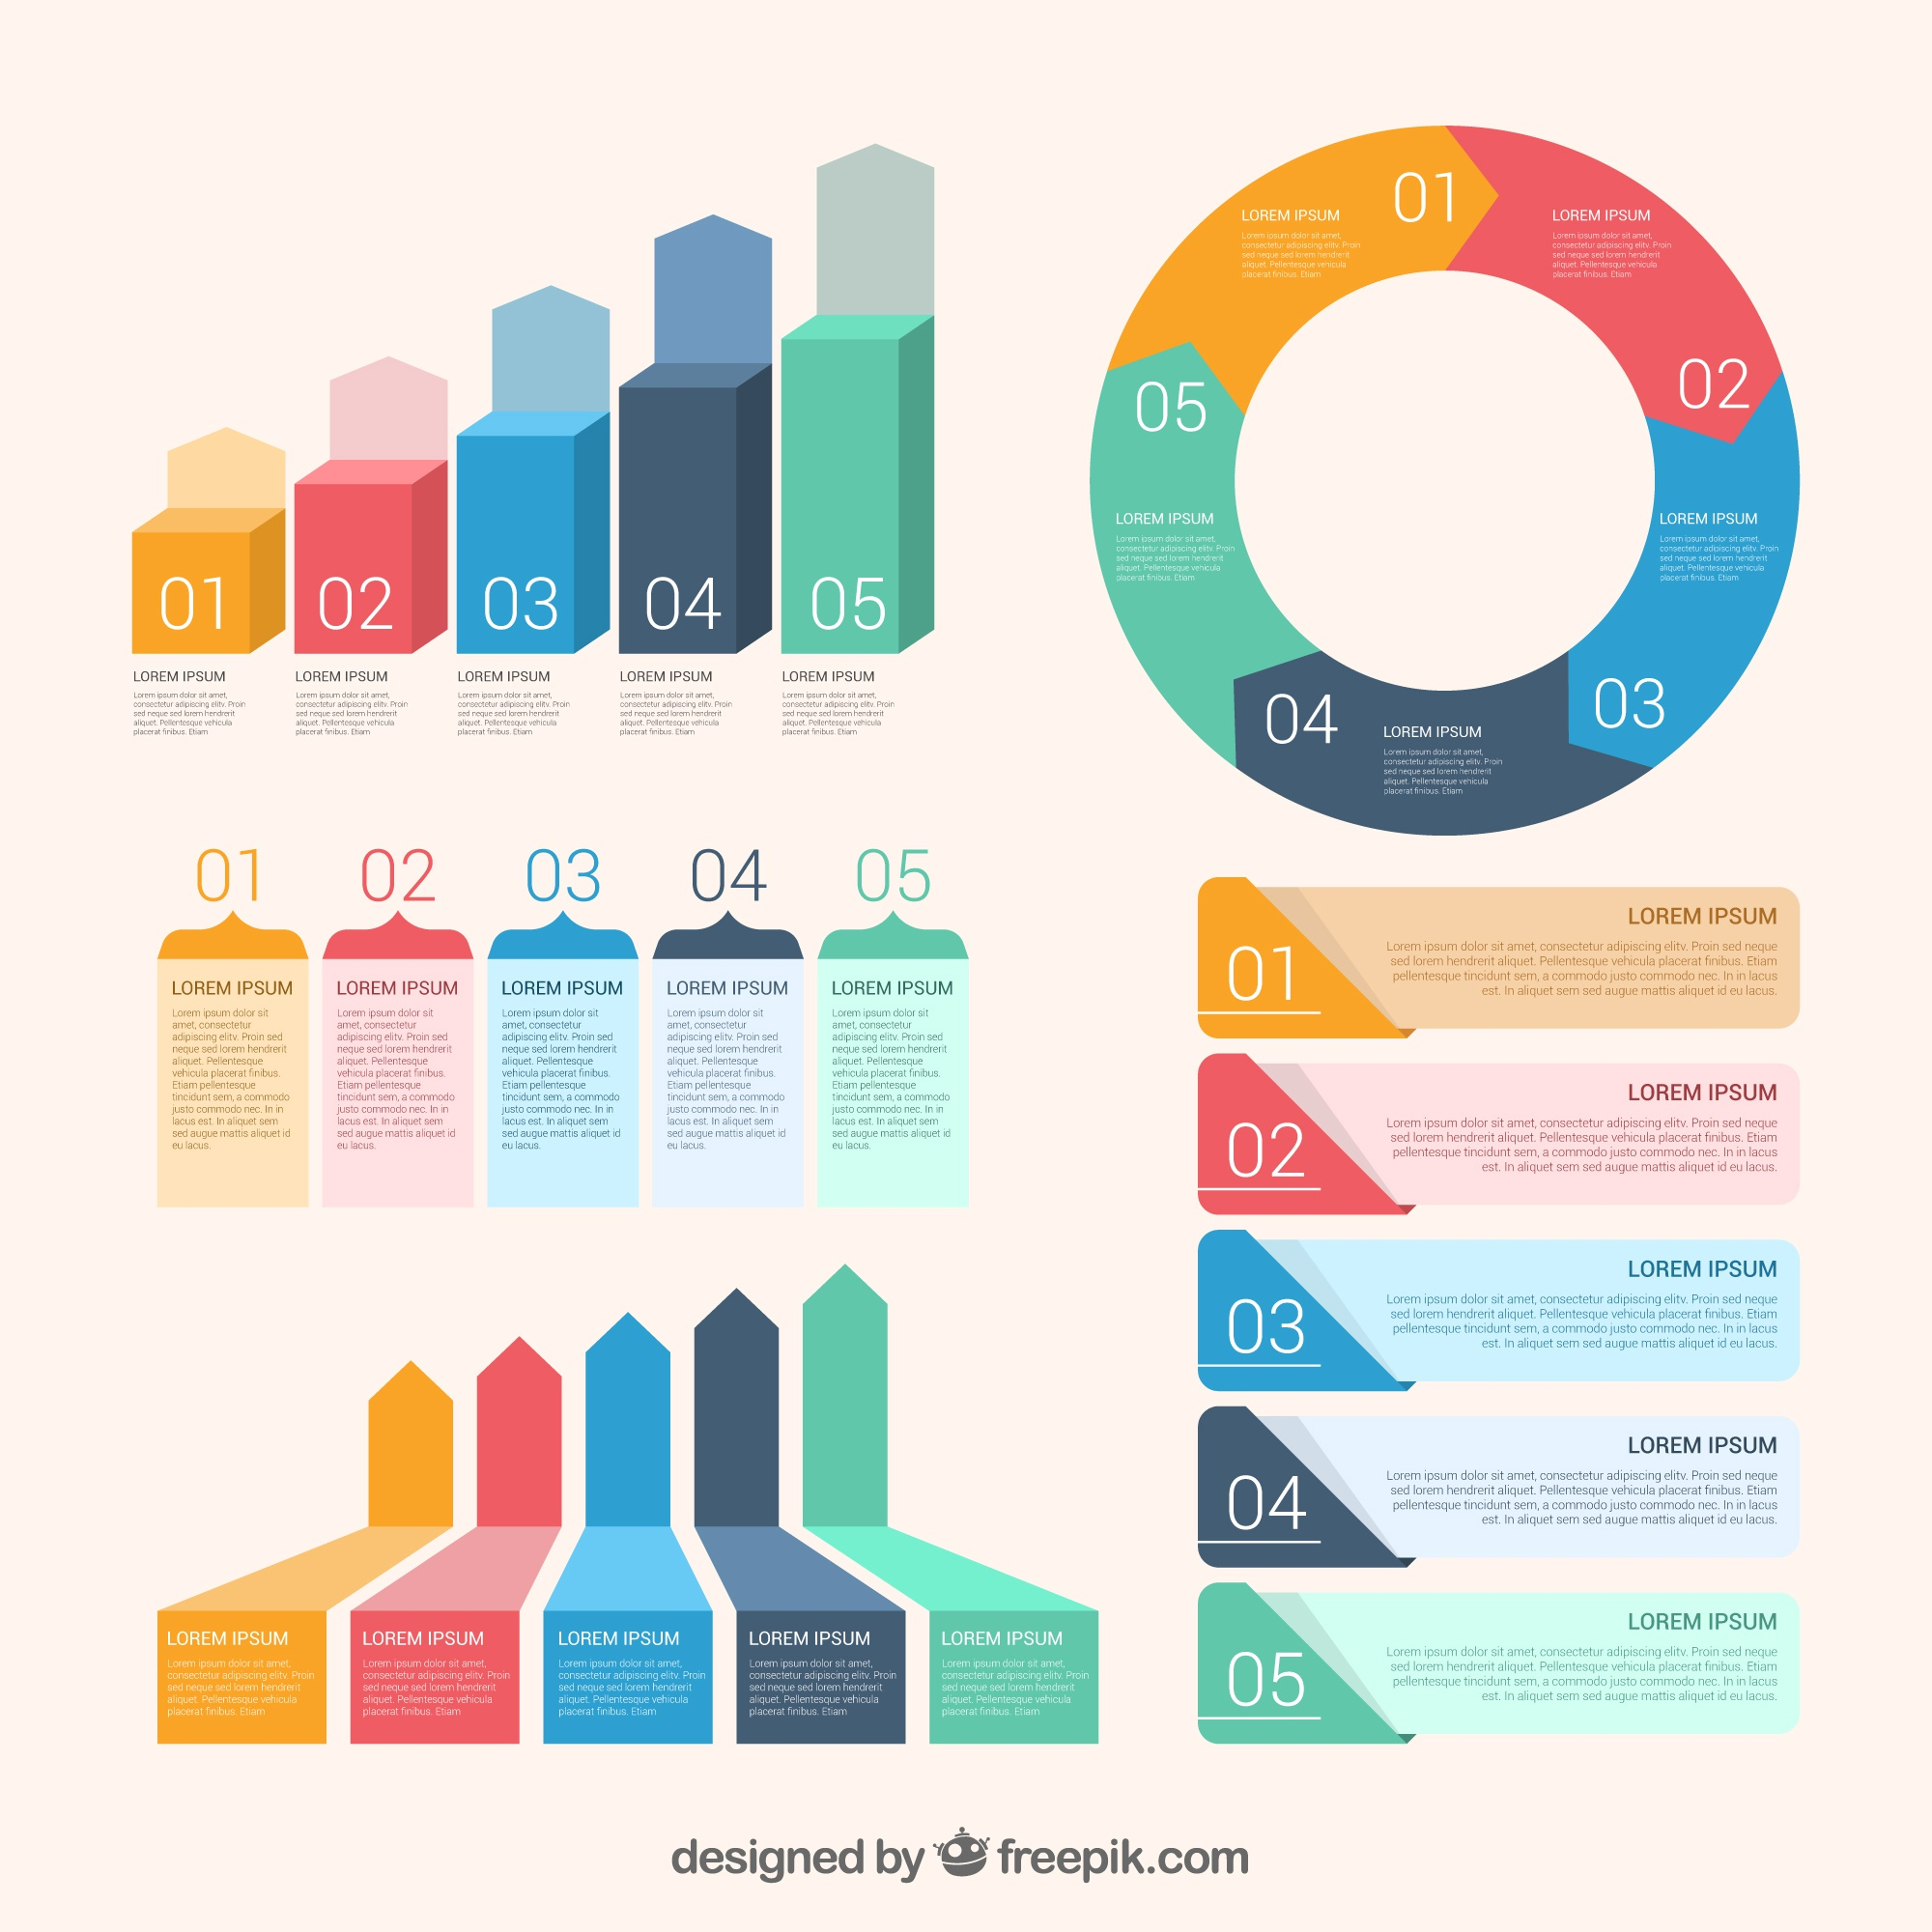 Assortment of flat infographic elements